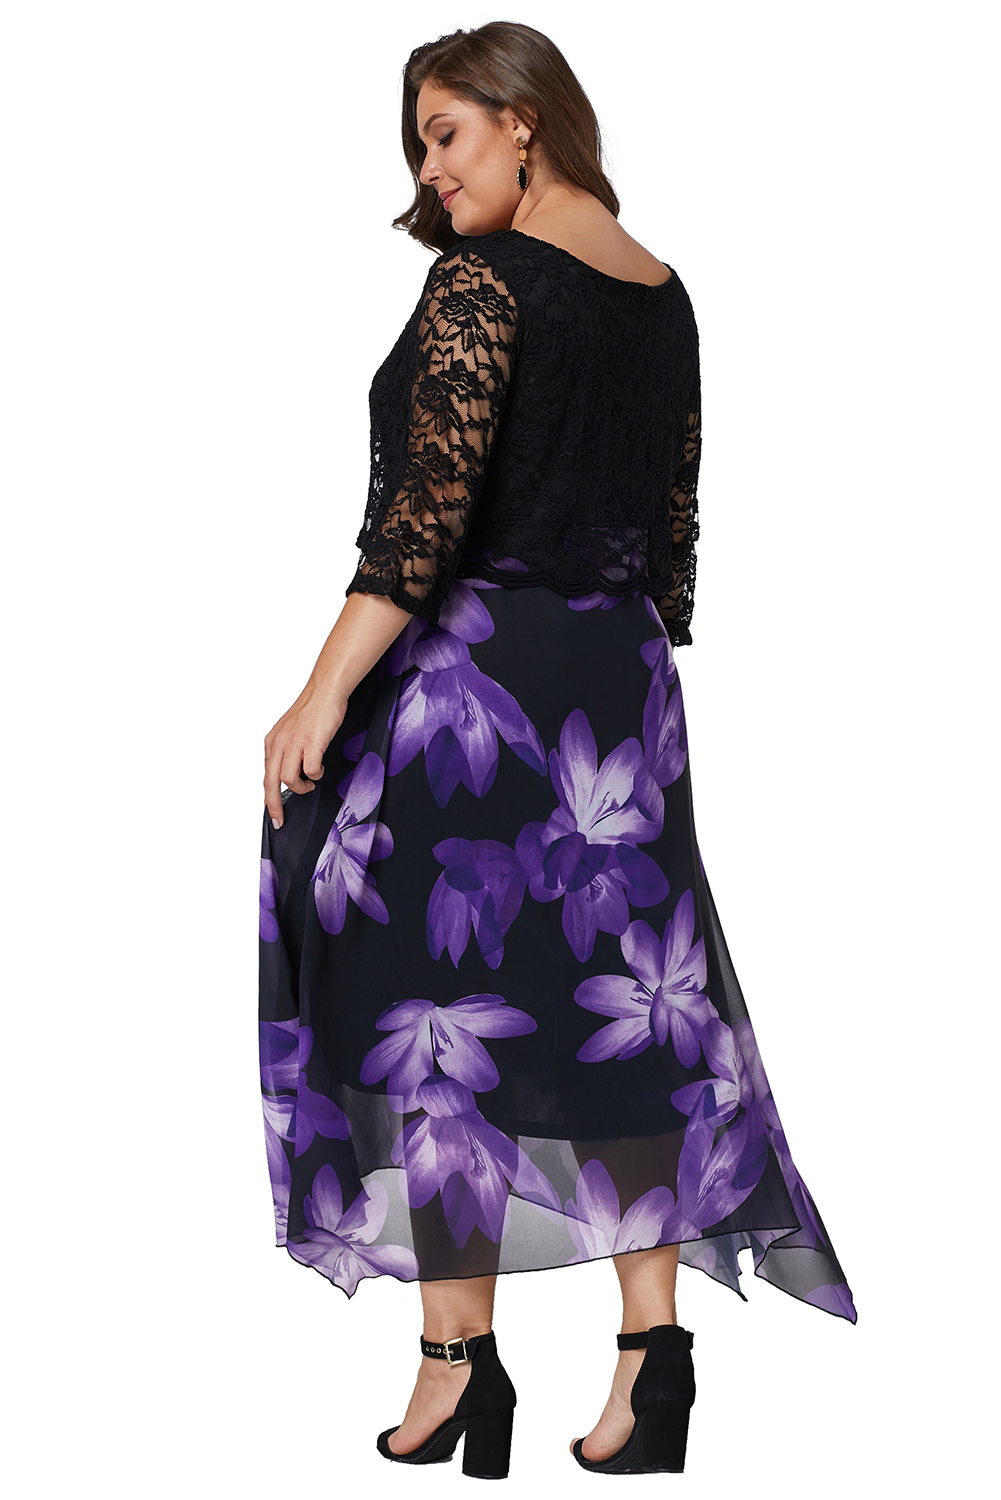 26 WITH STRETCH 3//4 SLEEVES BNWT RELAXX ALL OVER PRINT PLUS SIZE DRESS,SIZE 24